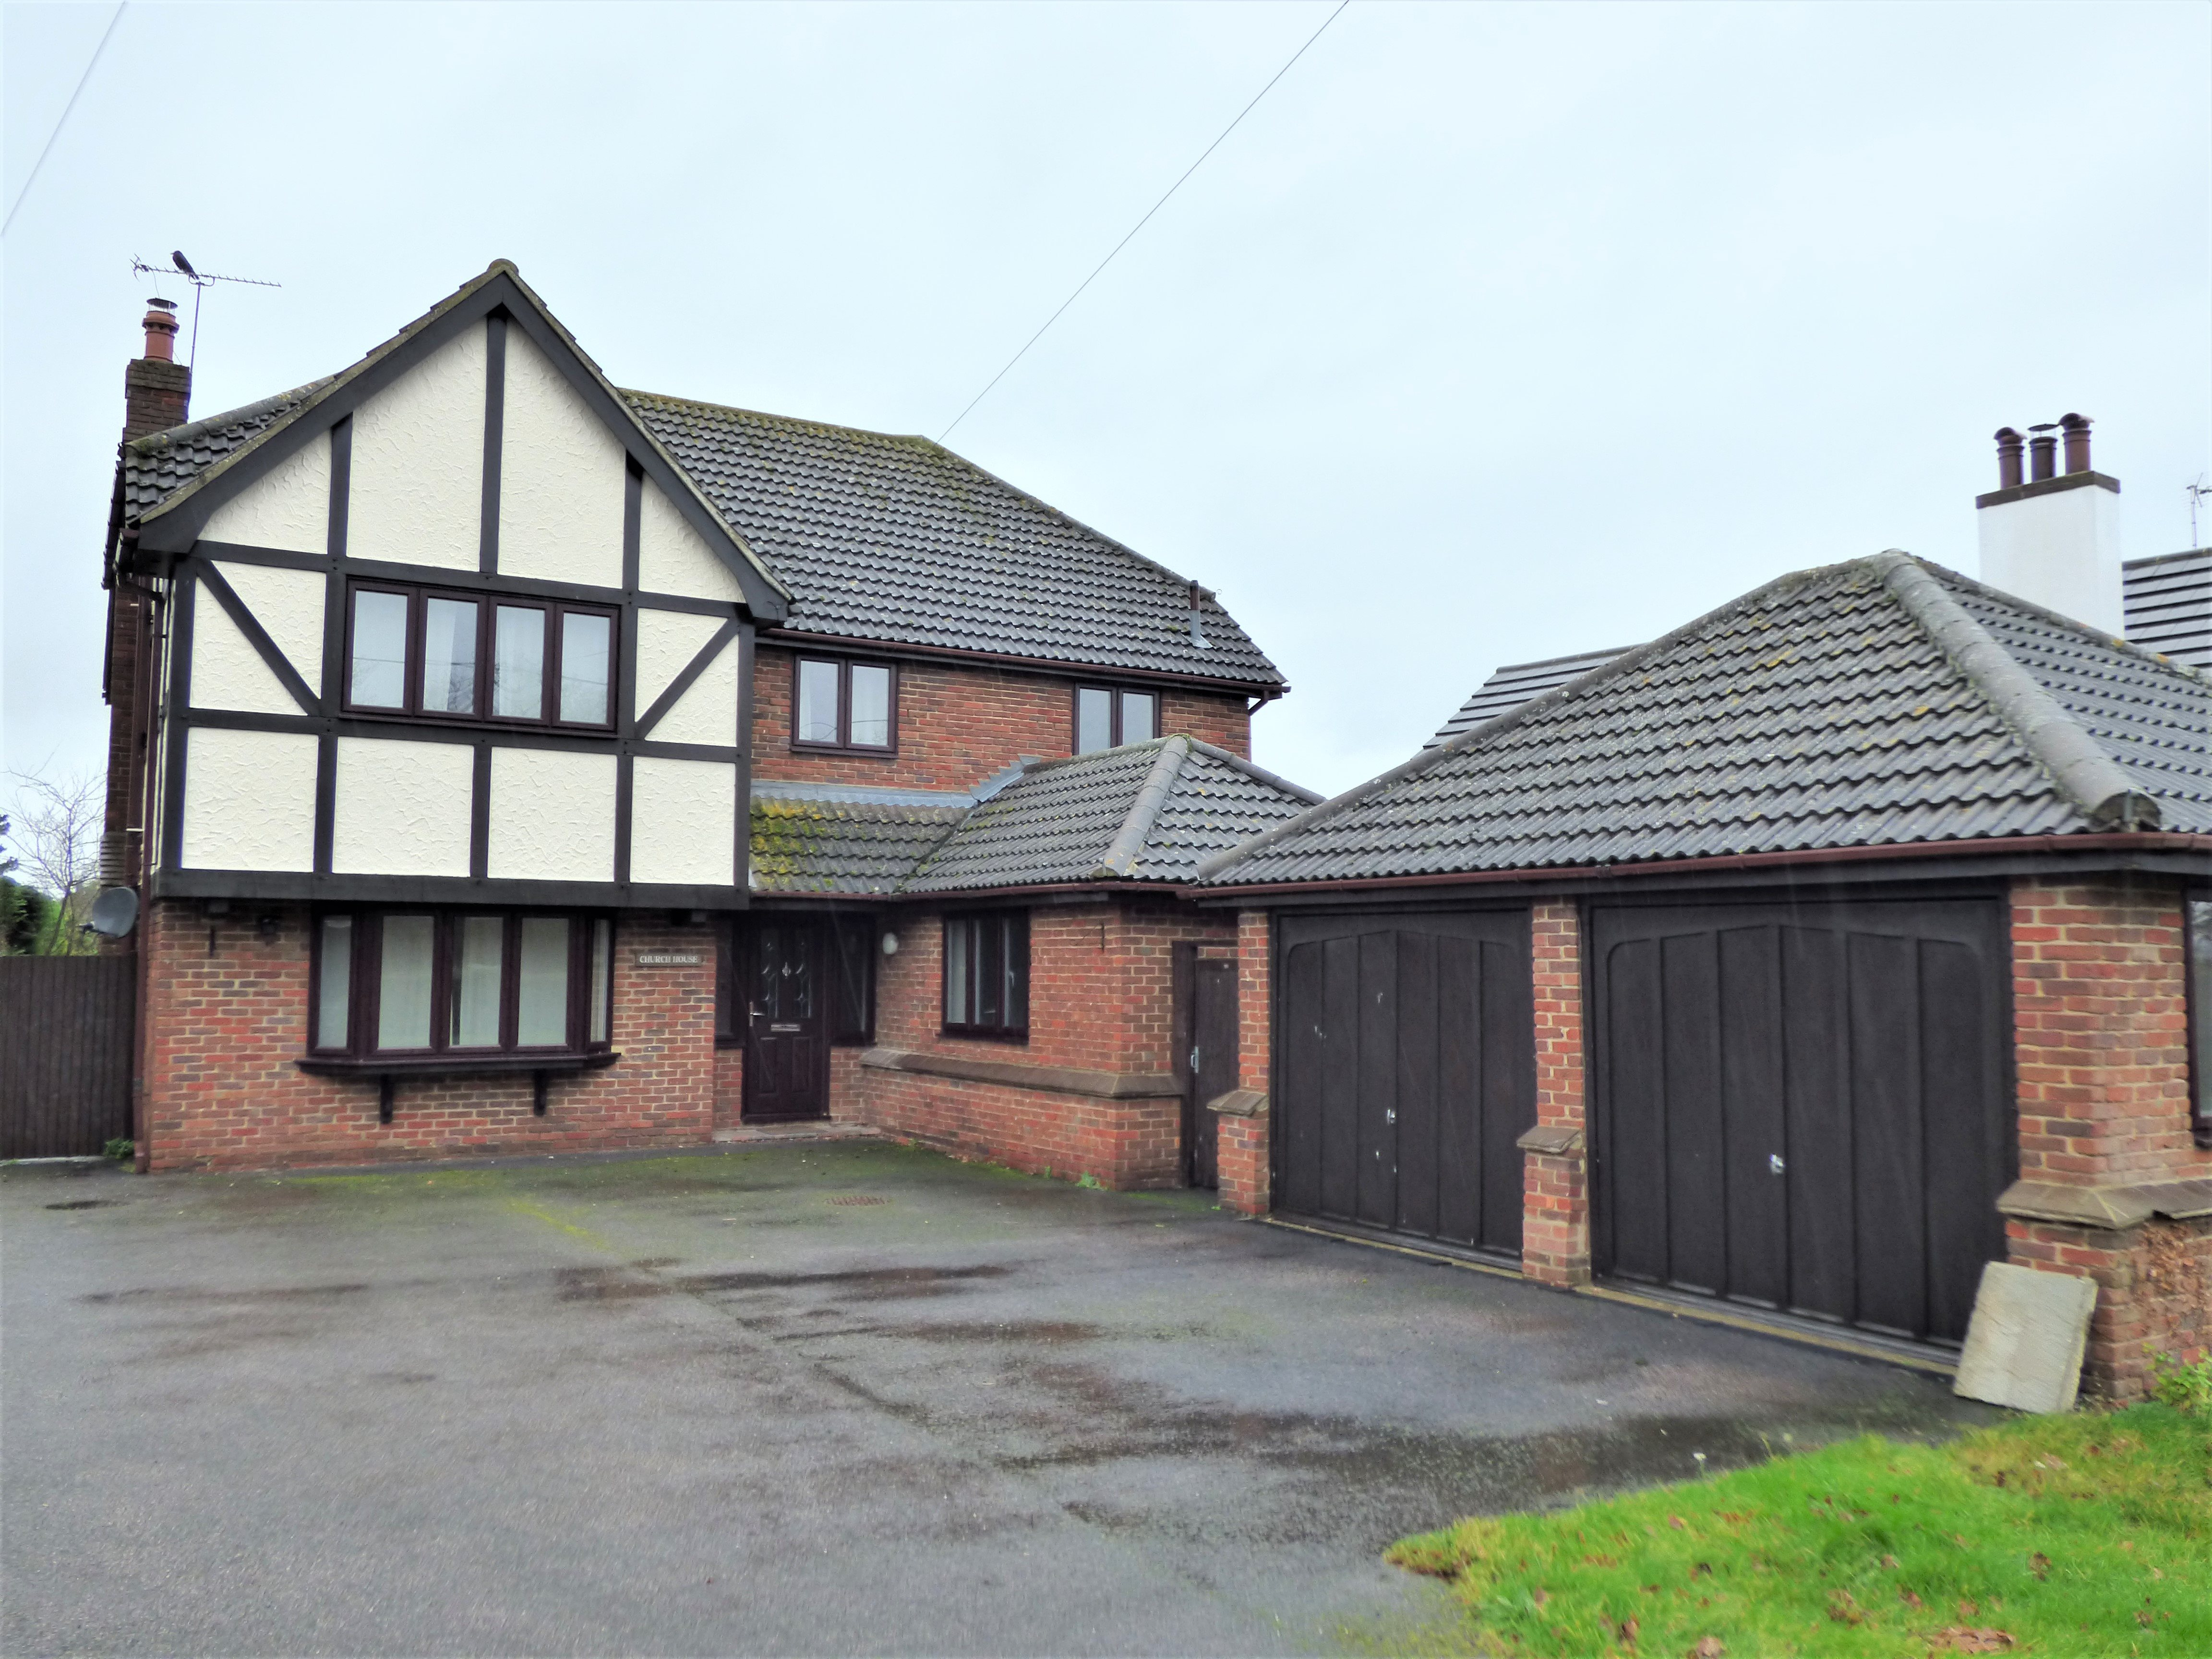 4 bed house to rent in Main Road, Bicknacre 0